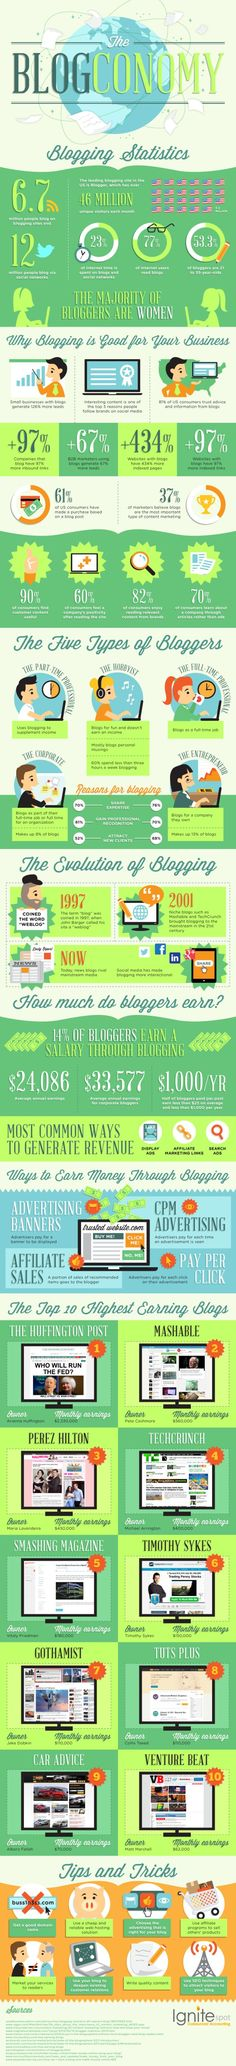 Blogging Statistics for Marketers - 61% of consumers have made a purchase based on a blog post